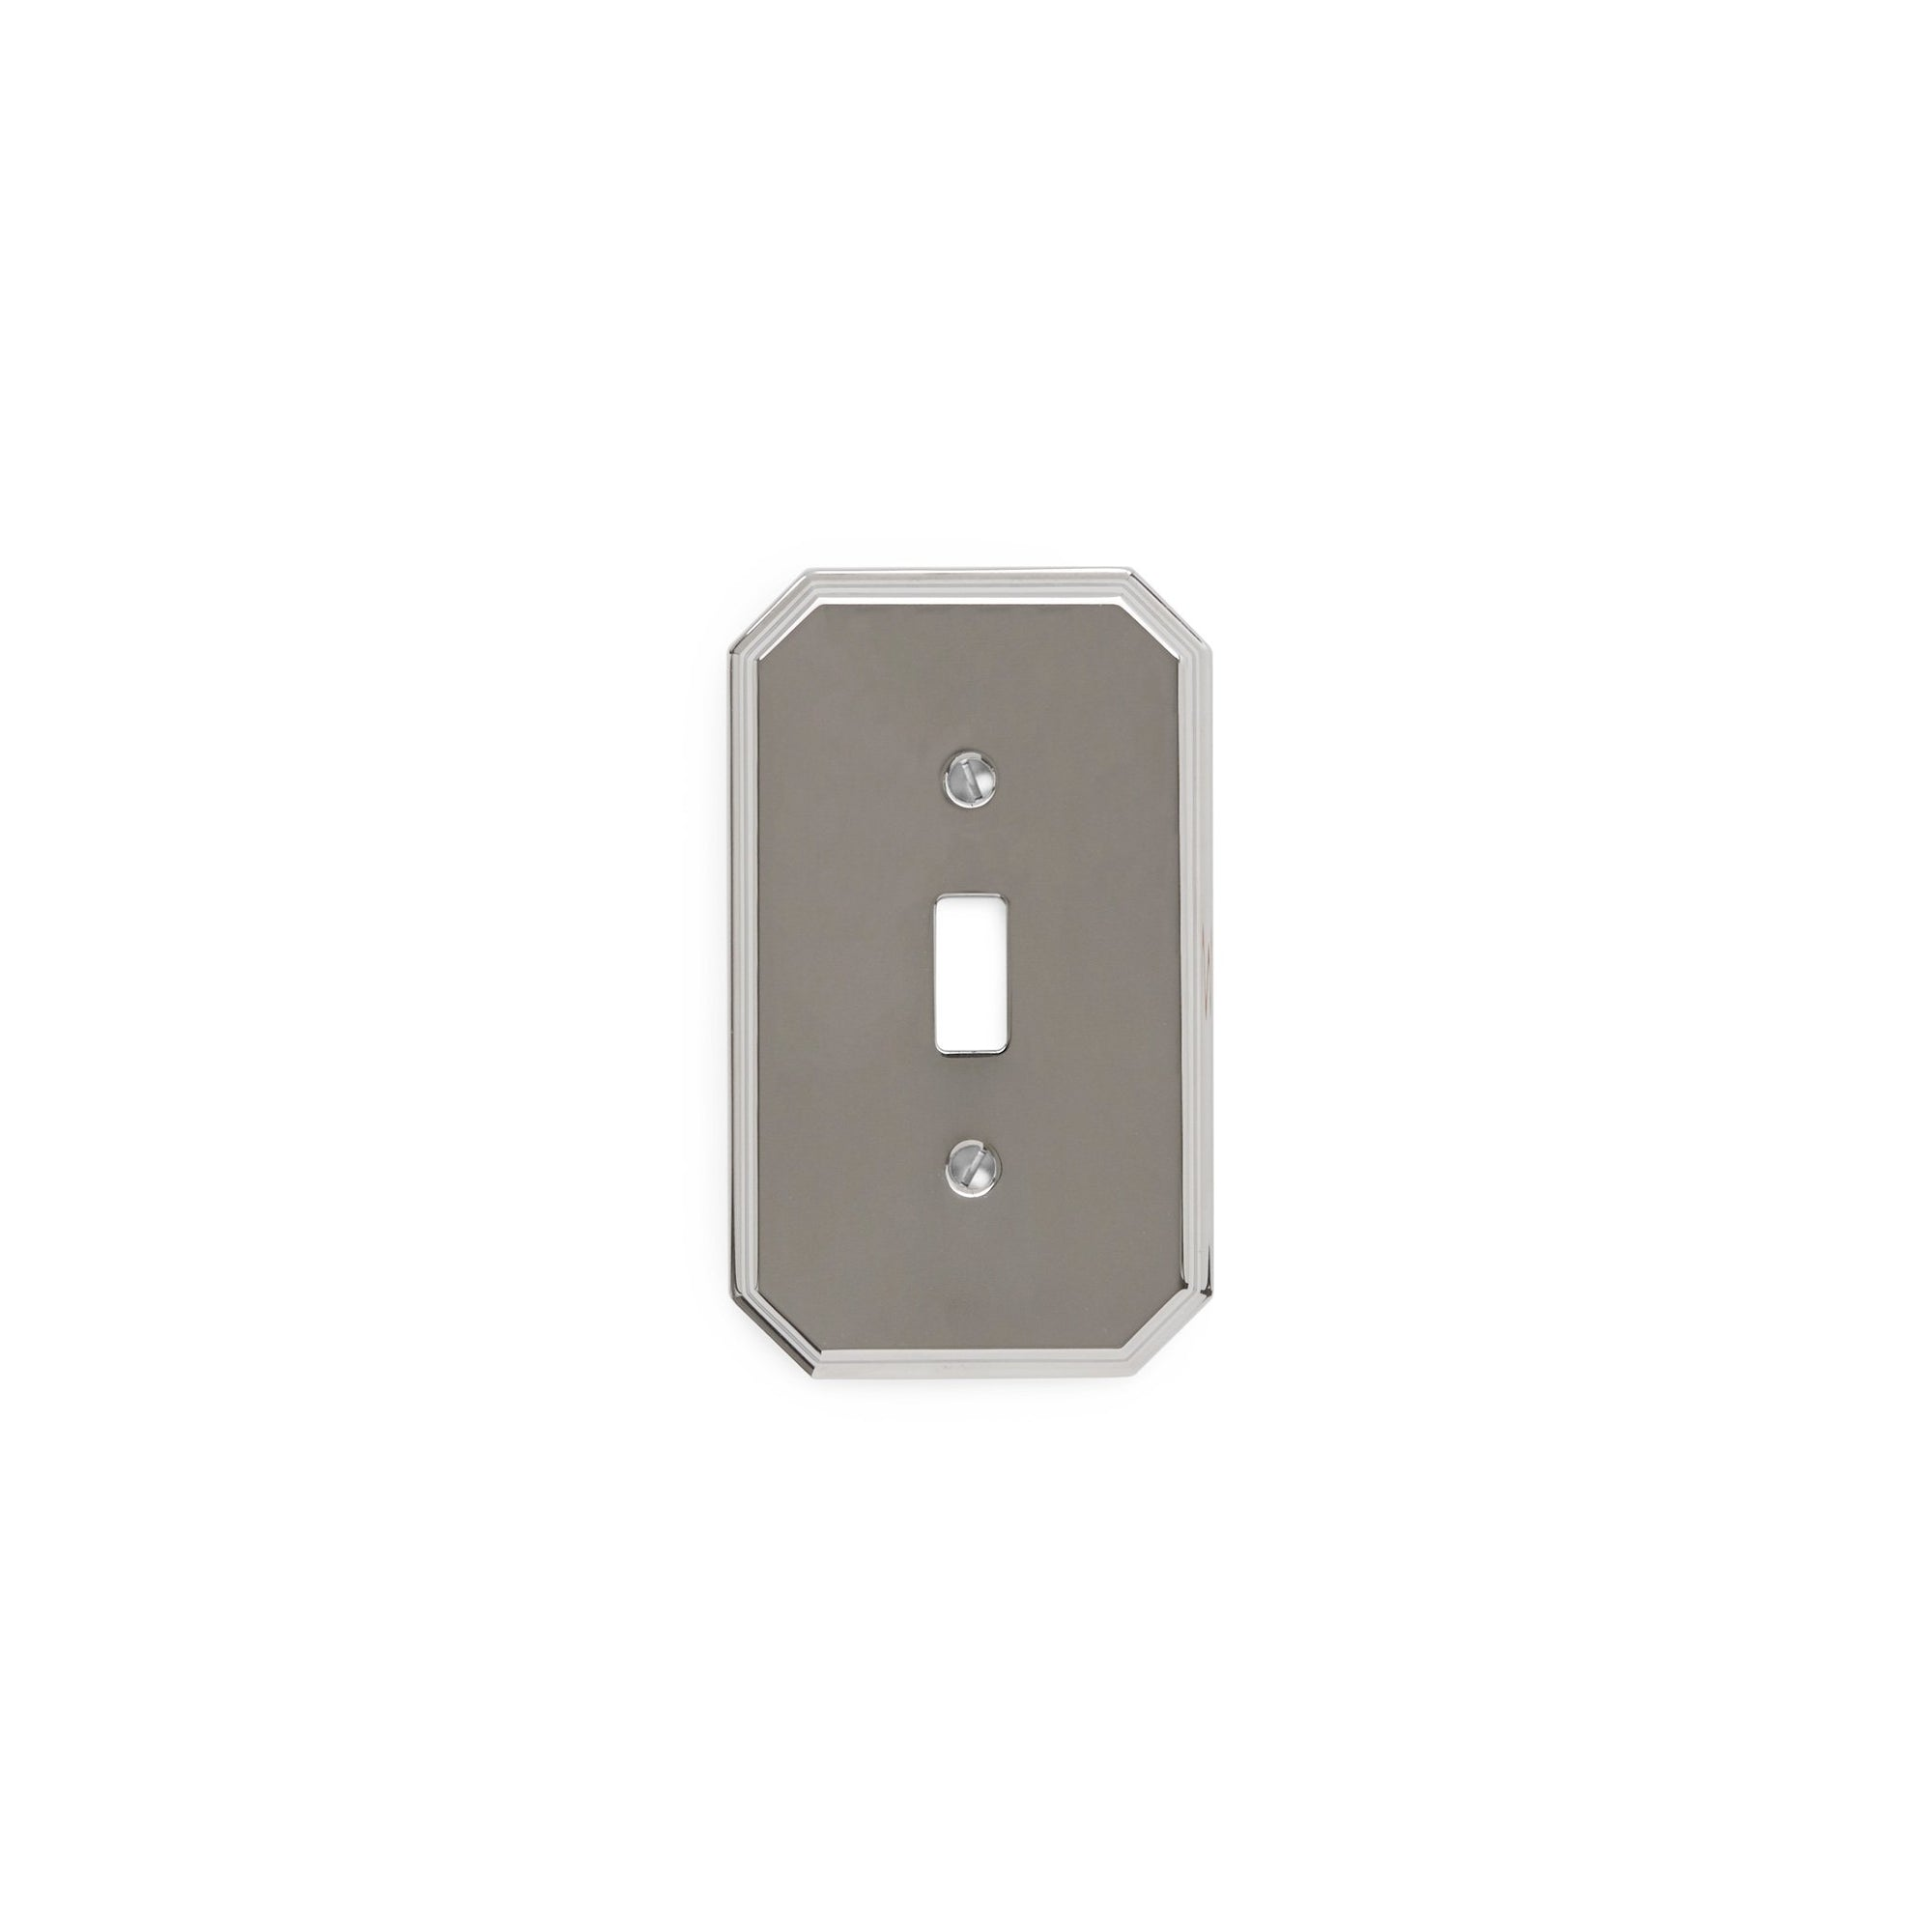 0035-SWT-CP Sherle Wagner International Harrison Single Switch Plate in Polished Chrome metal finish